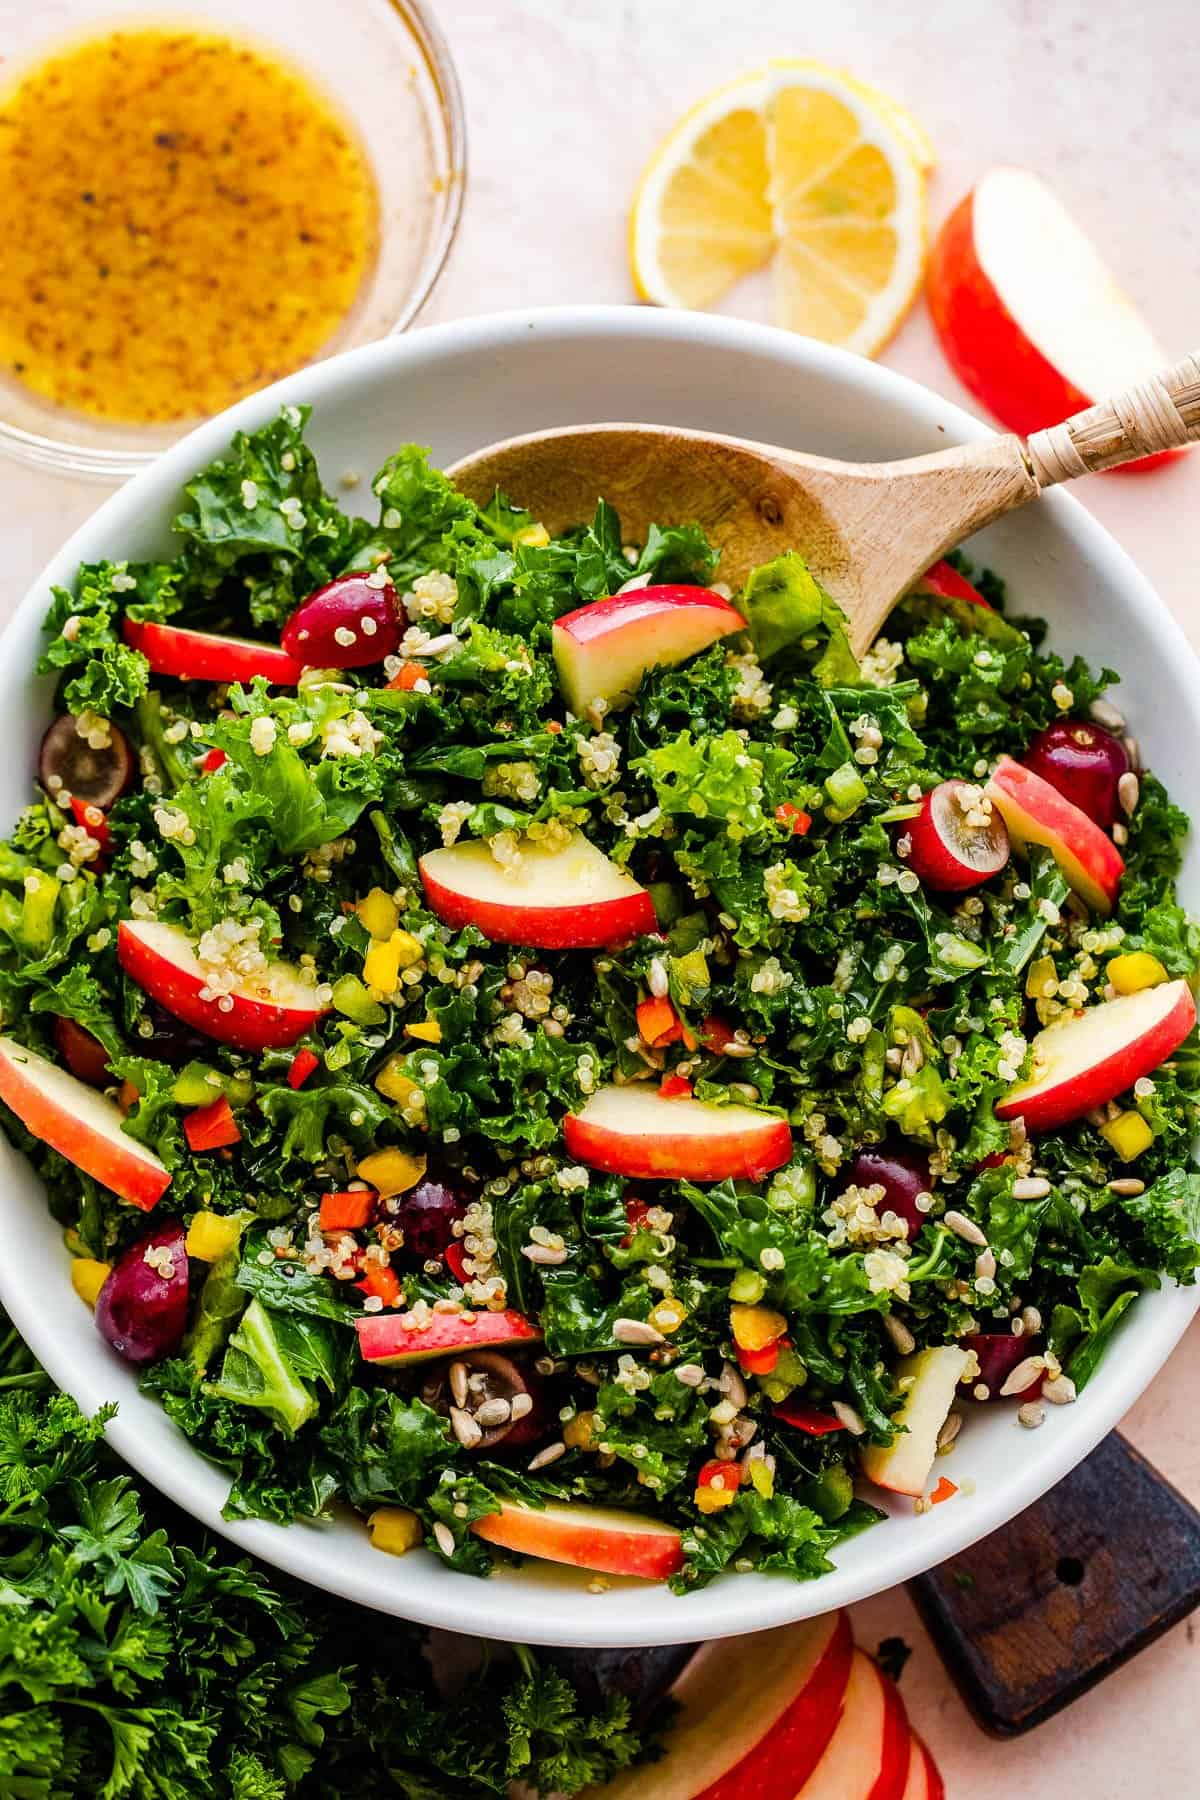 Crunchy Kale Quinoa Salad in a white bowl with a wooden spoon inside the bowl.